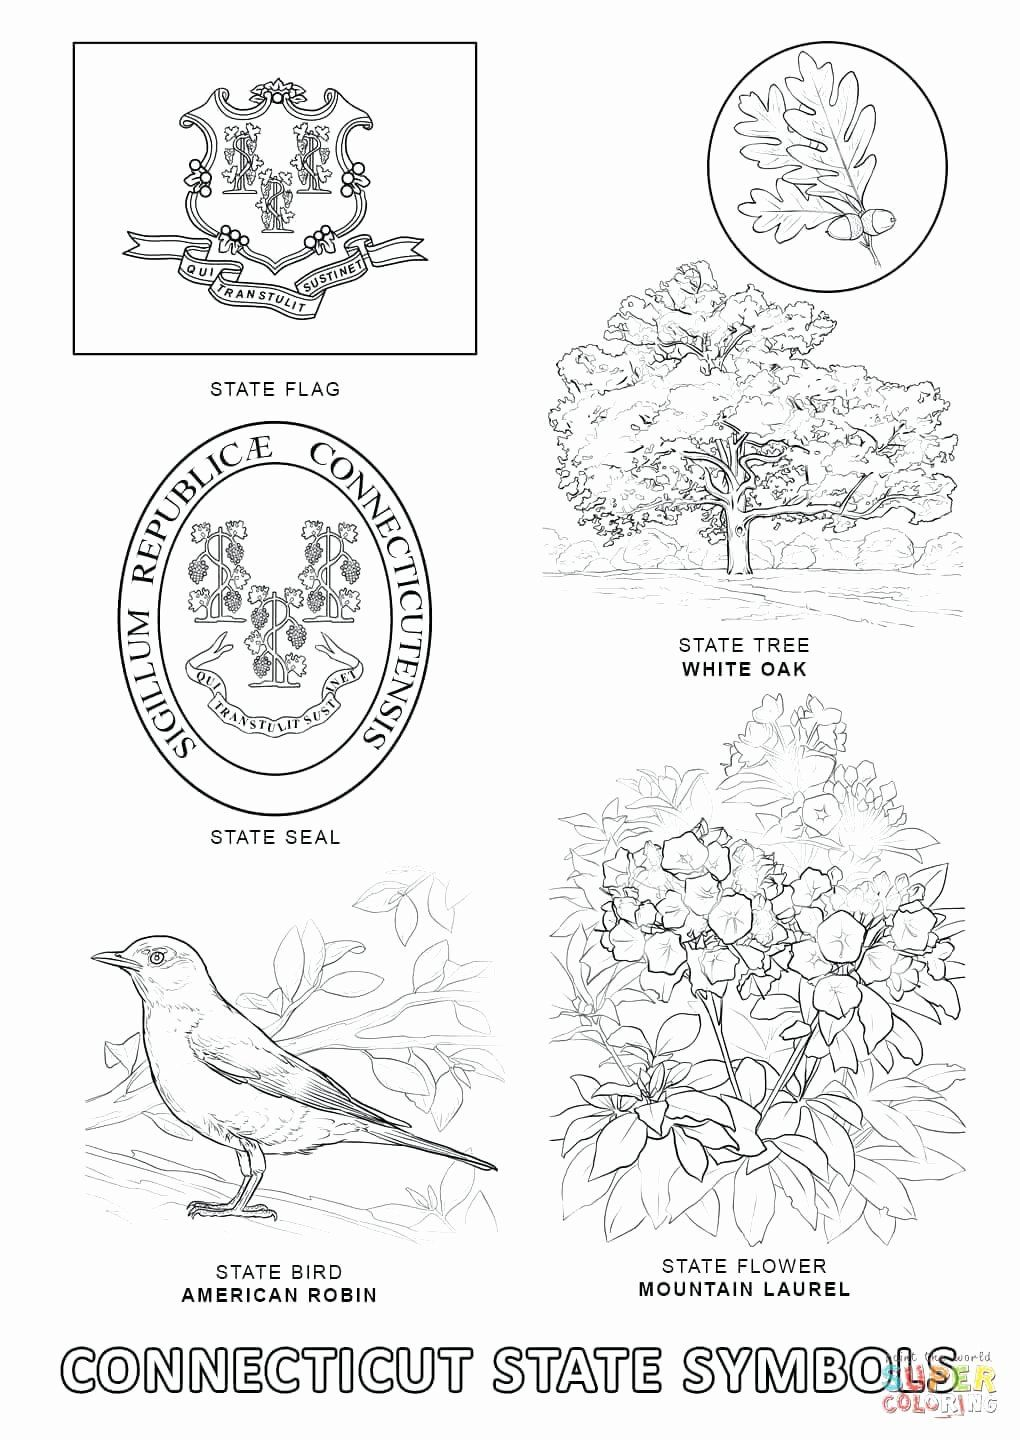 Maryland State Flag Coloring Page Beautiful Mississippi State Flag